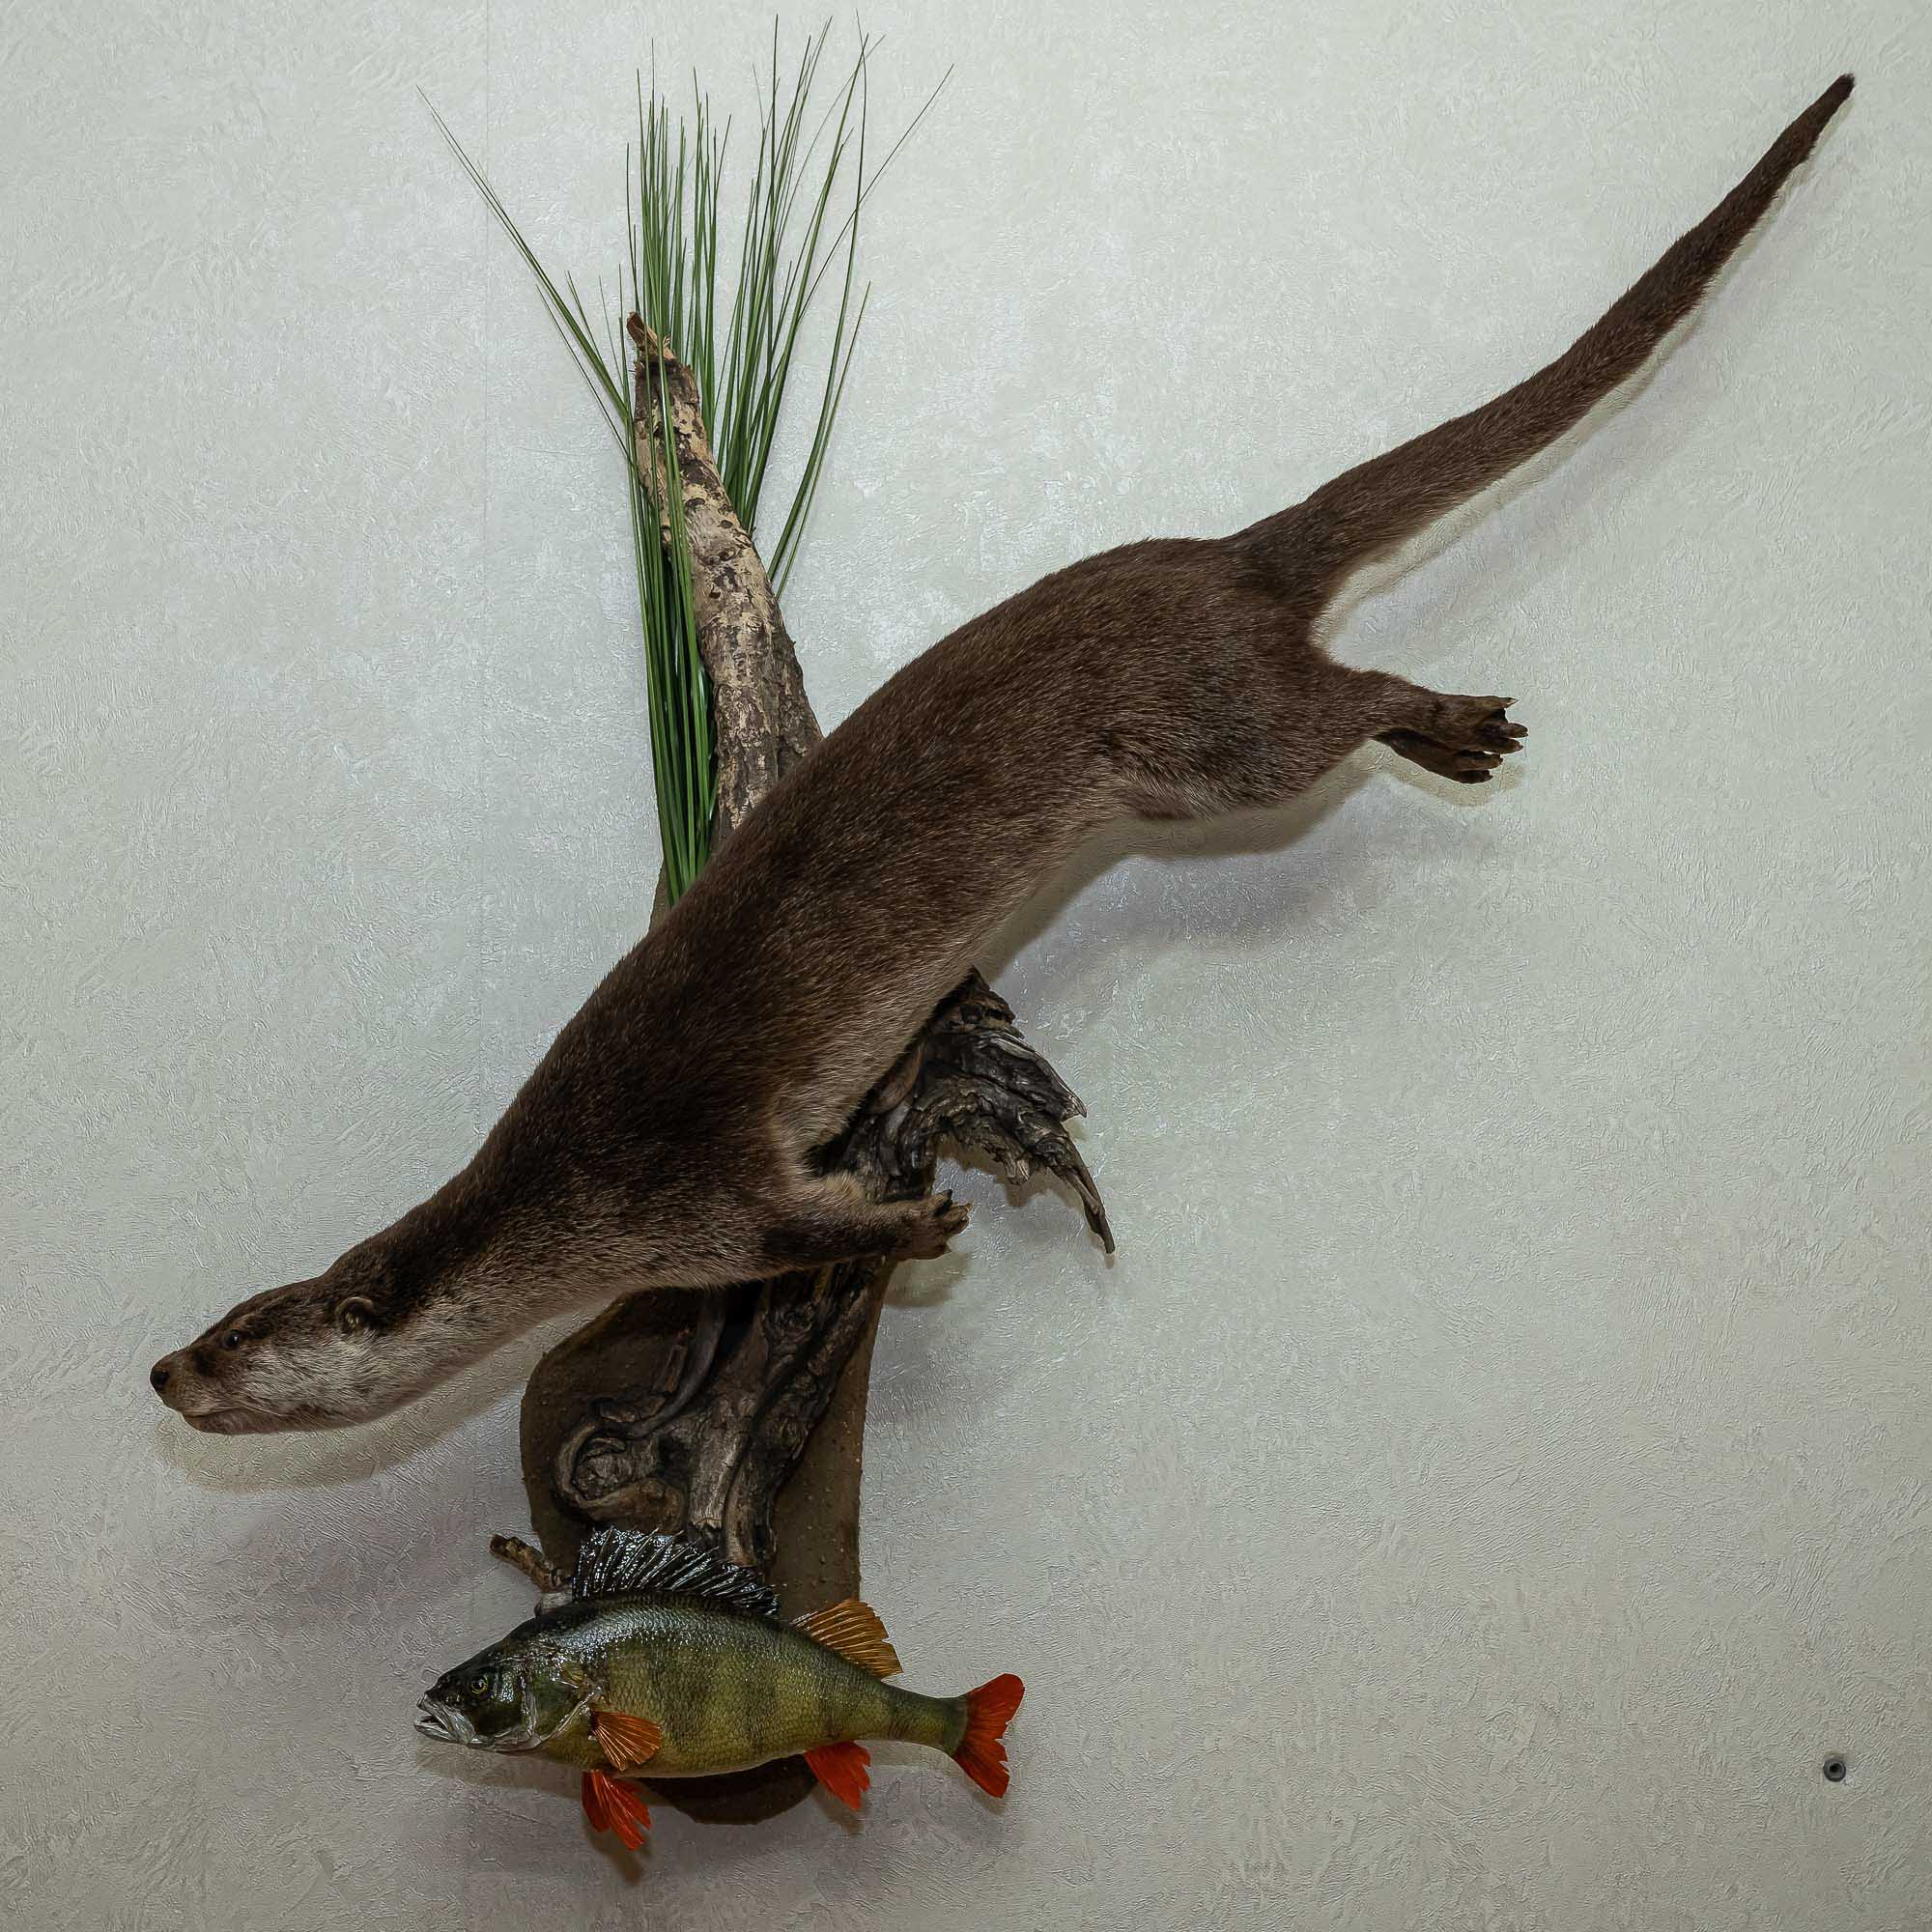 RIVER OTTER WITH FISH - TAXIDERMY LIFE-SIZE MOUNT - ST4768